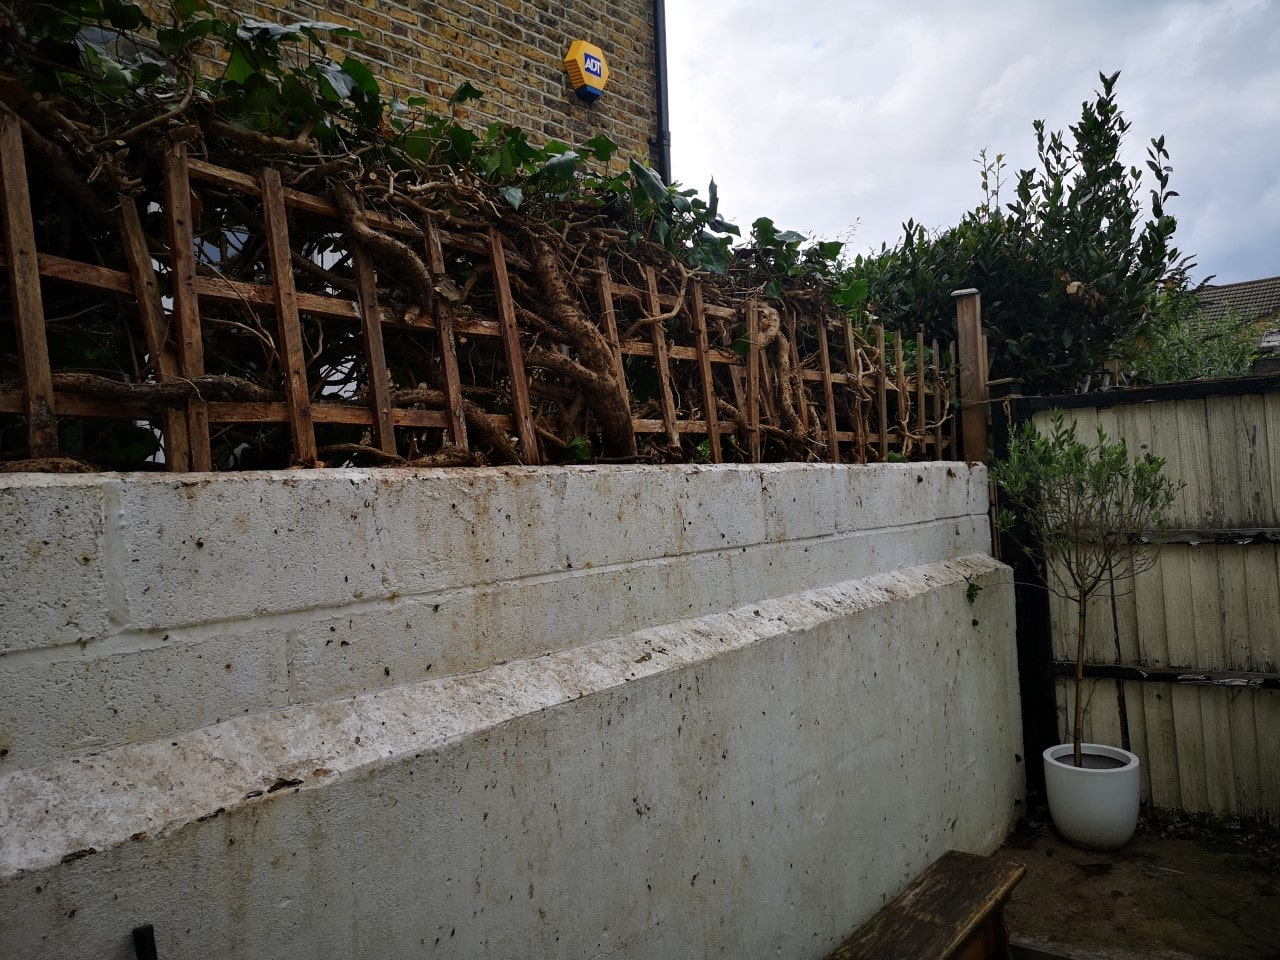 Gardening Services South East London